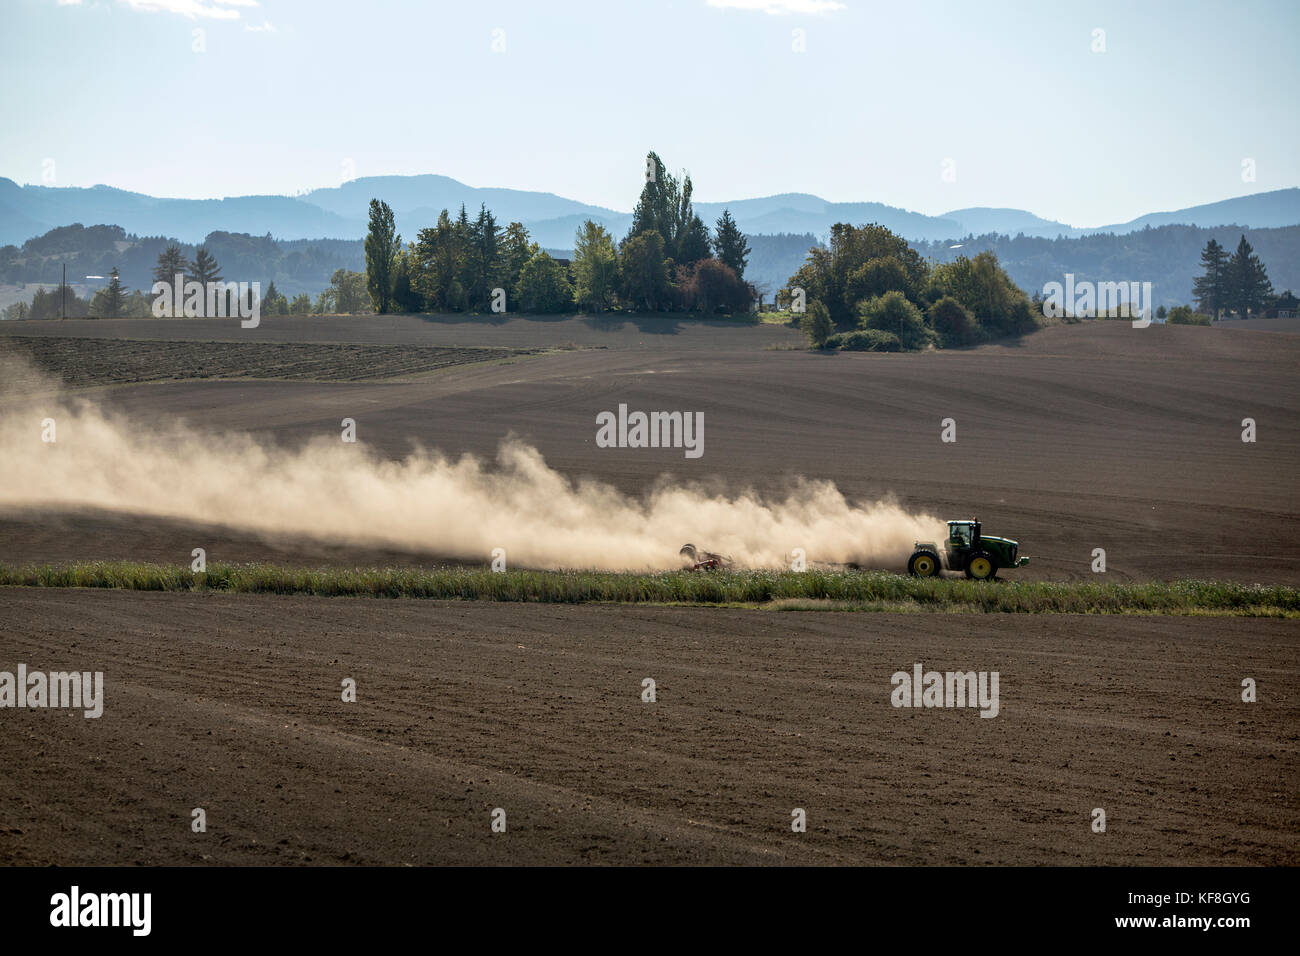 USA, Oregon, Willamette Valley, a farmer prepars a field for planting, Yamhill - Stock Image